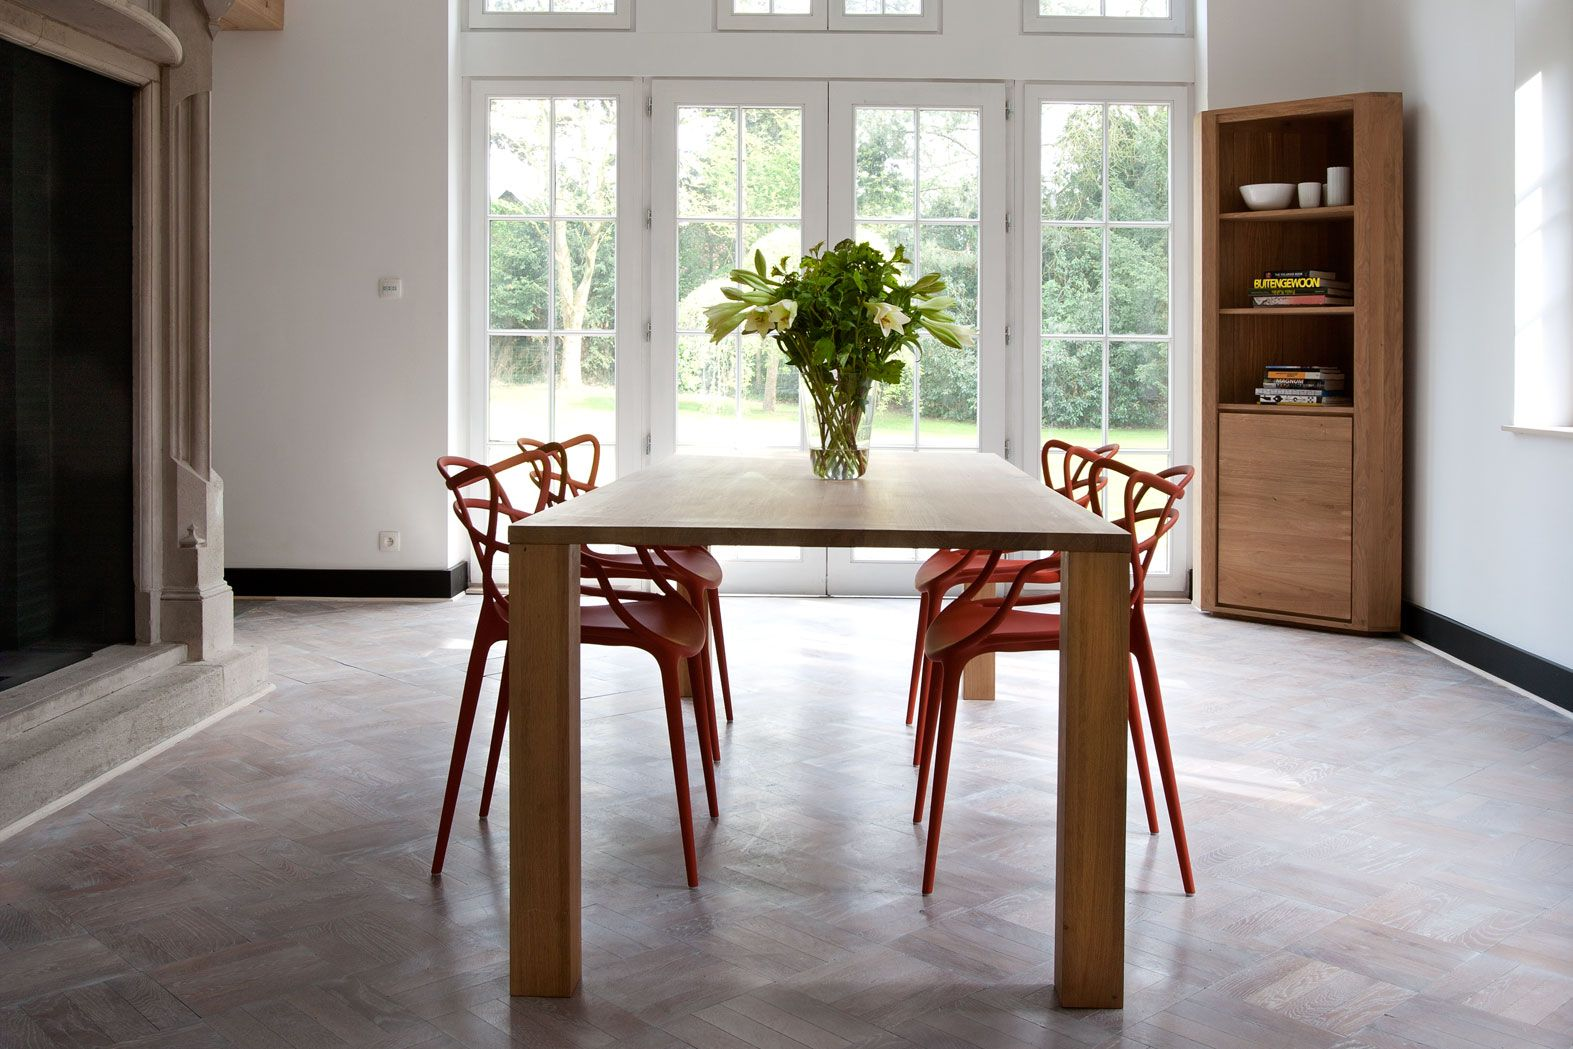 Create A Serene Dining Space With A Minimalist Solid Wood Table